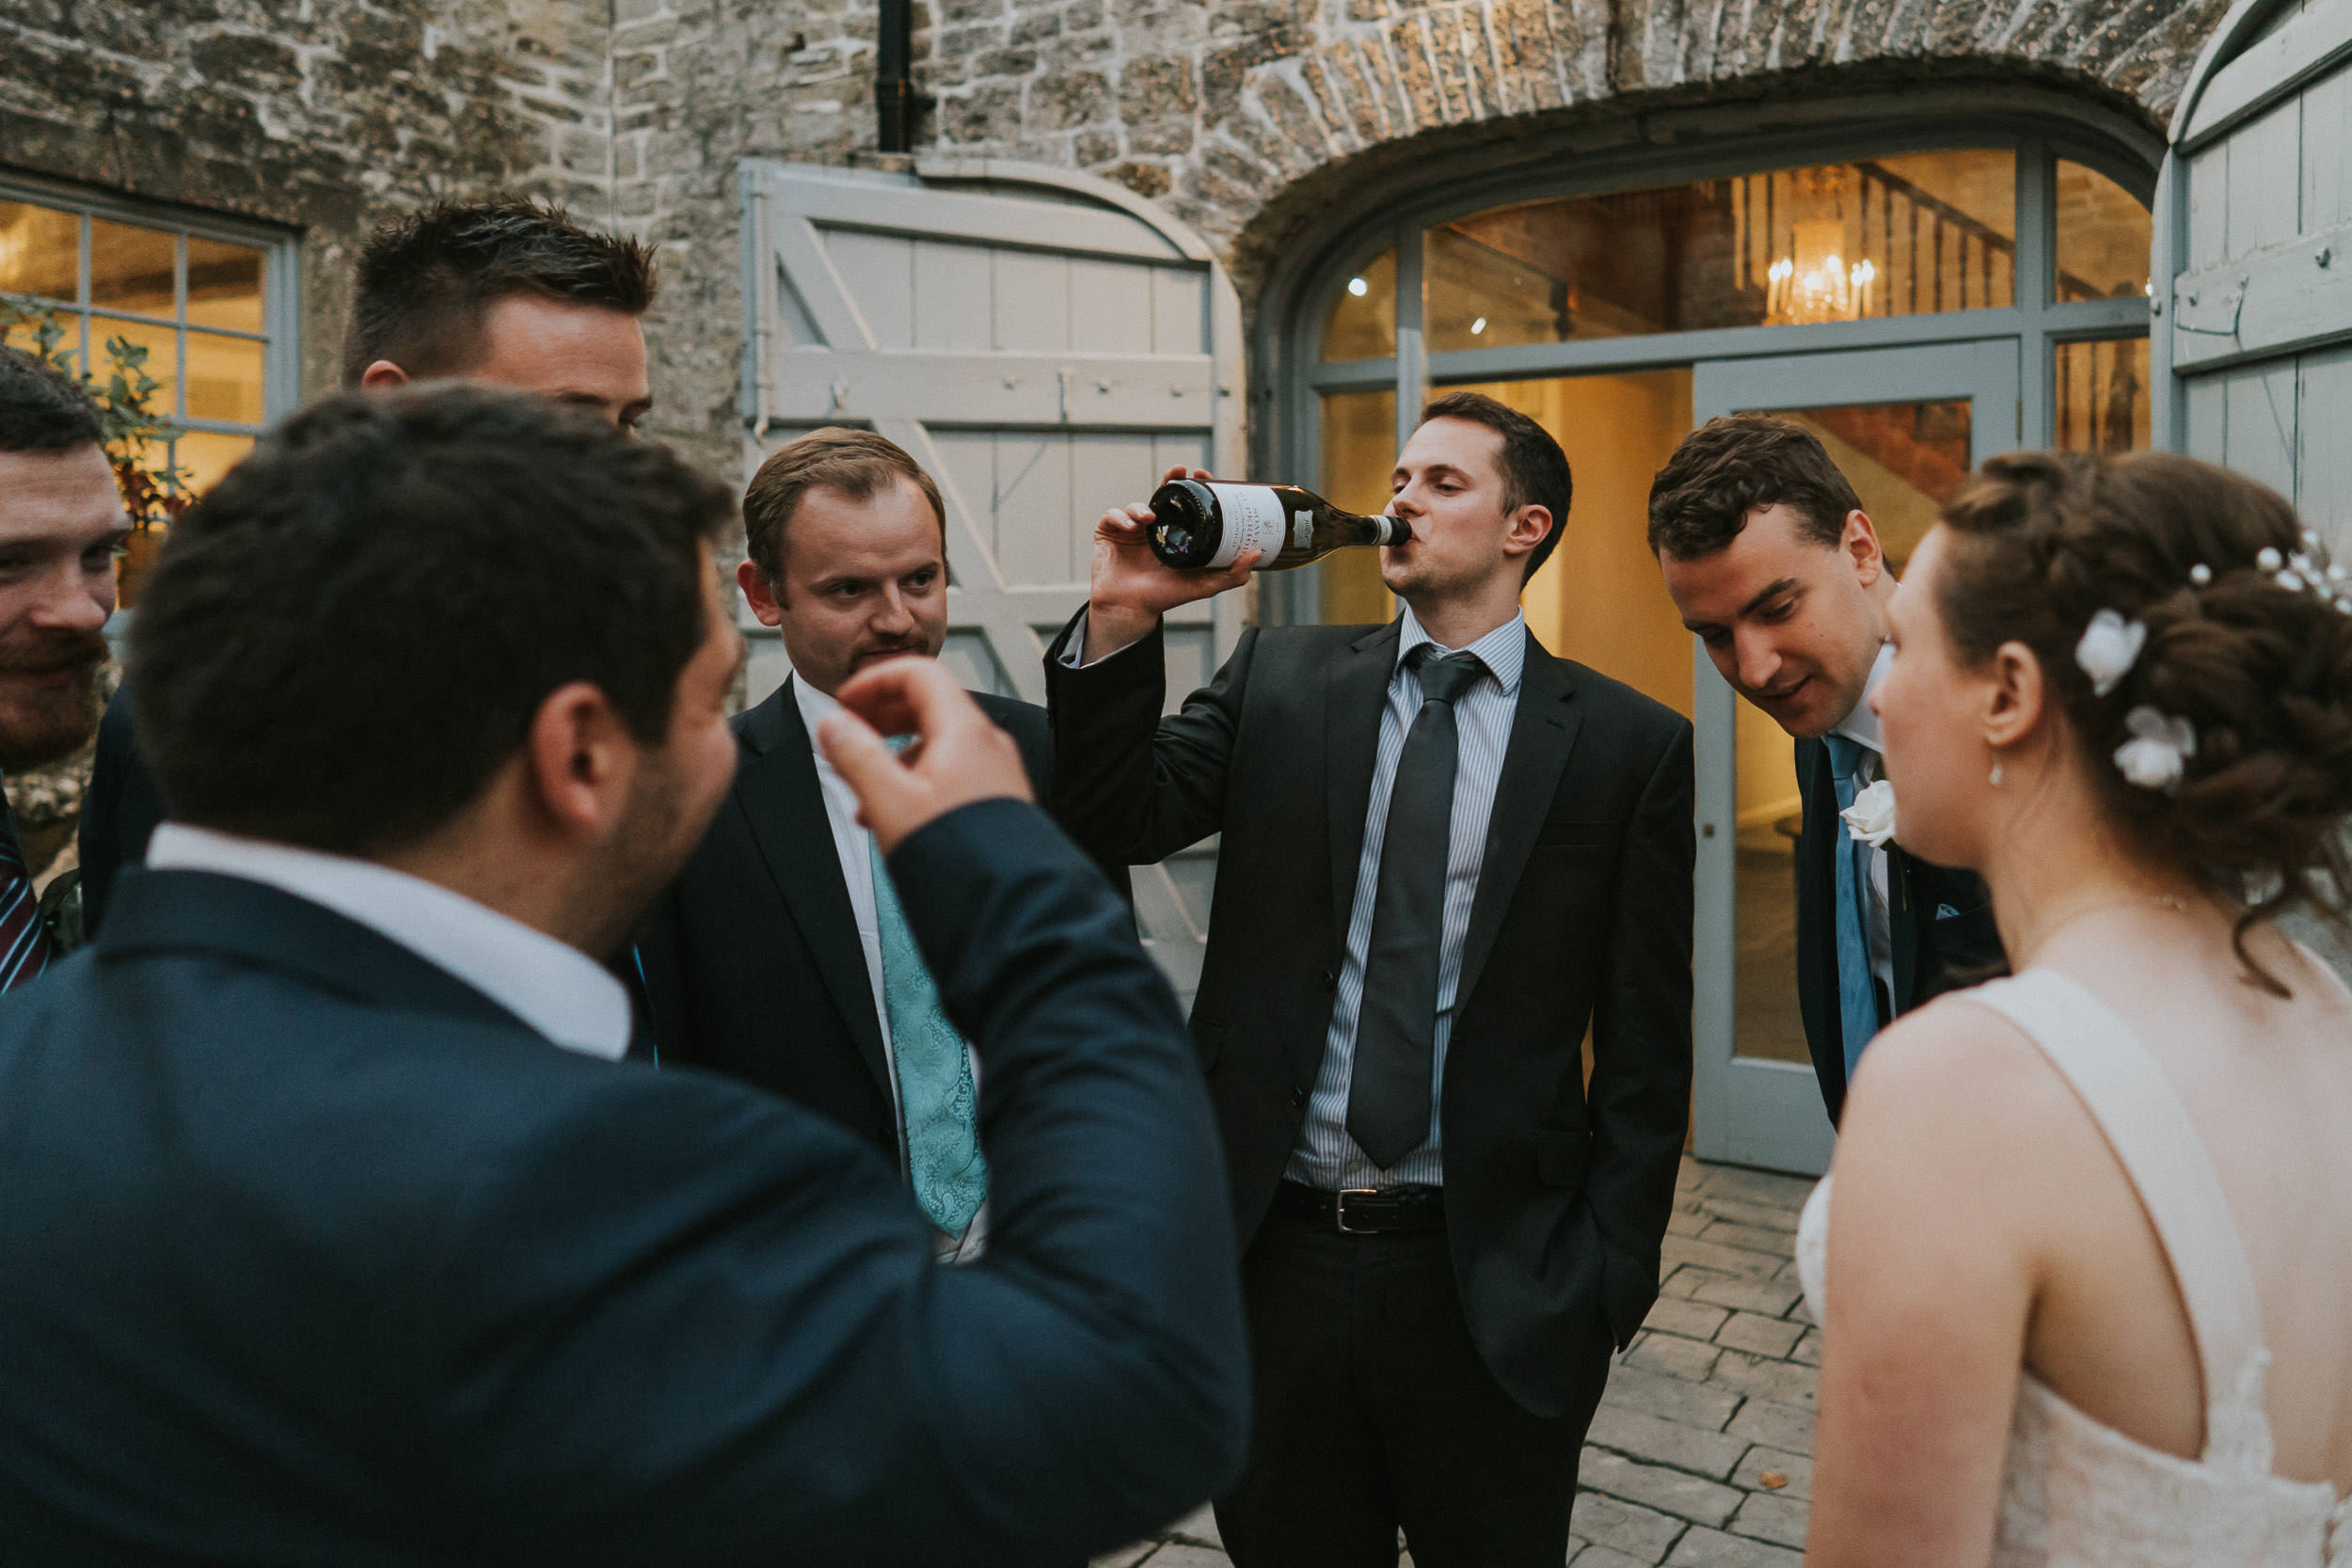 Pennard House Wedding - Guests at the Coach House